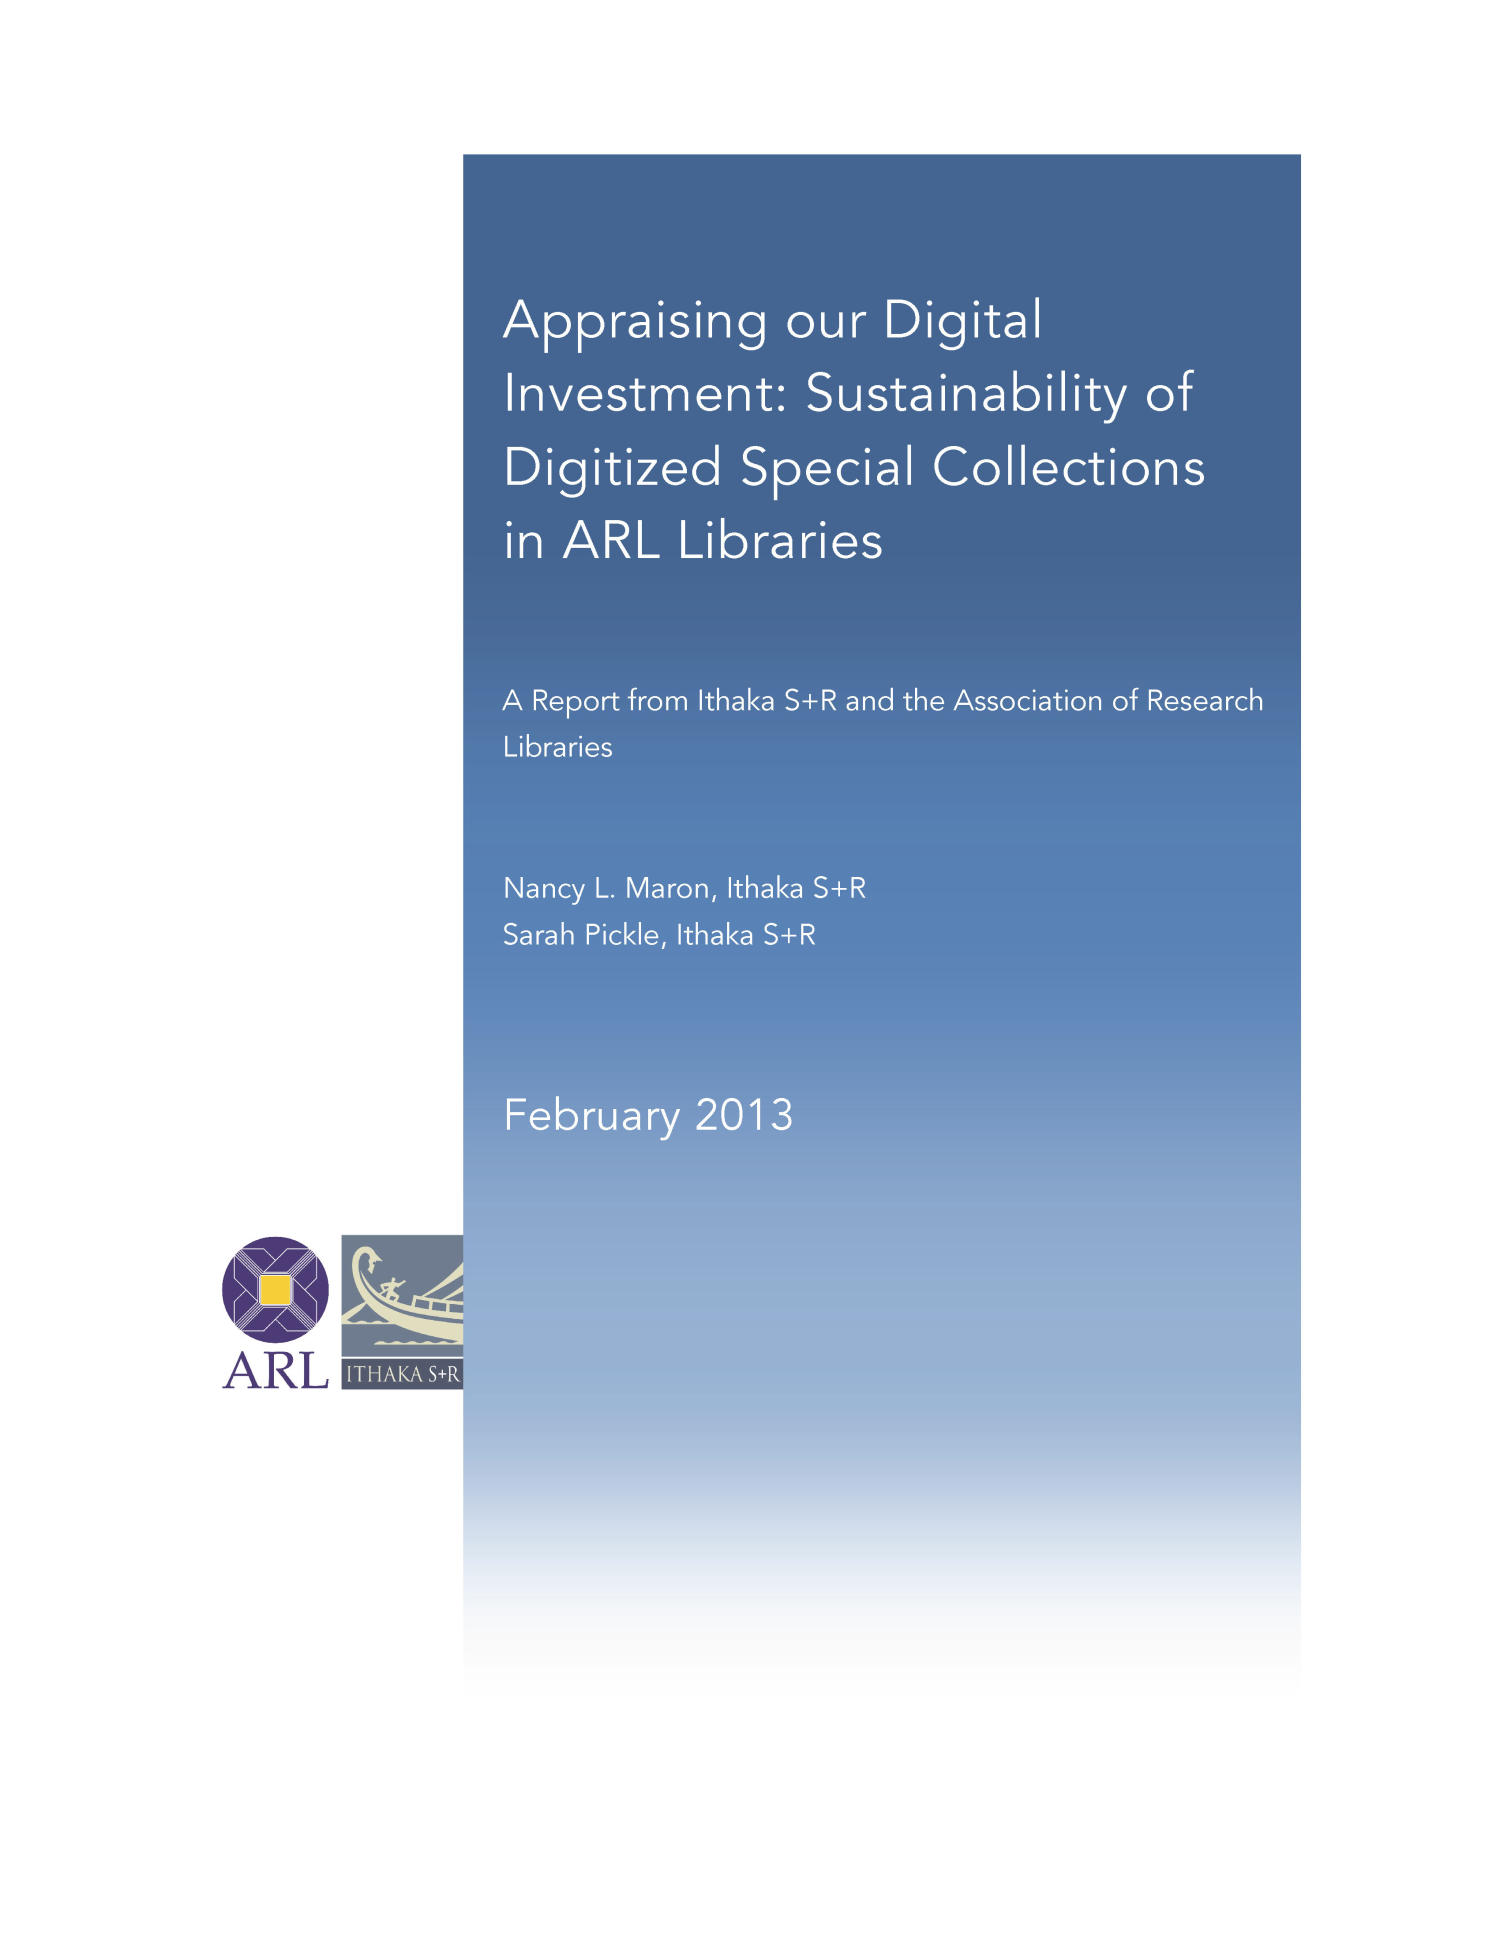 Appraising our digital investment : sustainability of digitized special collections in ARL libraries                                                                                                      Title Page